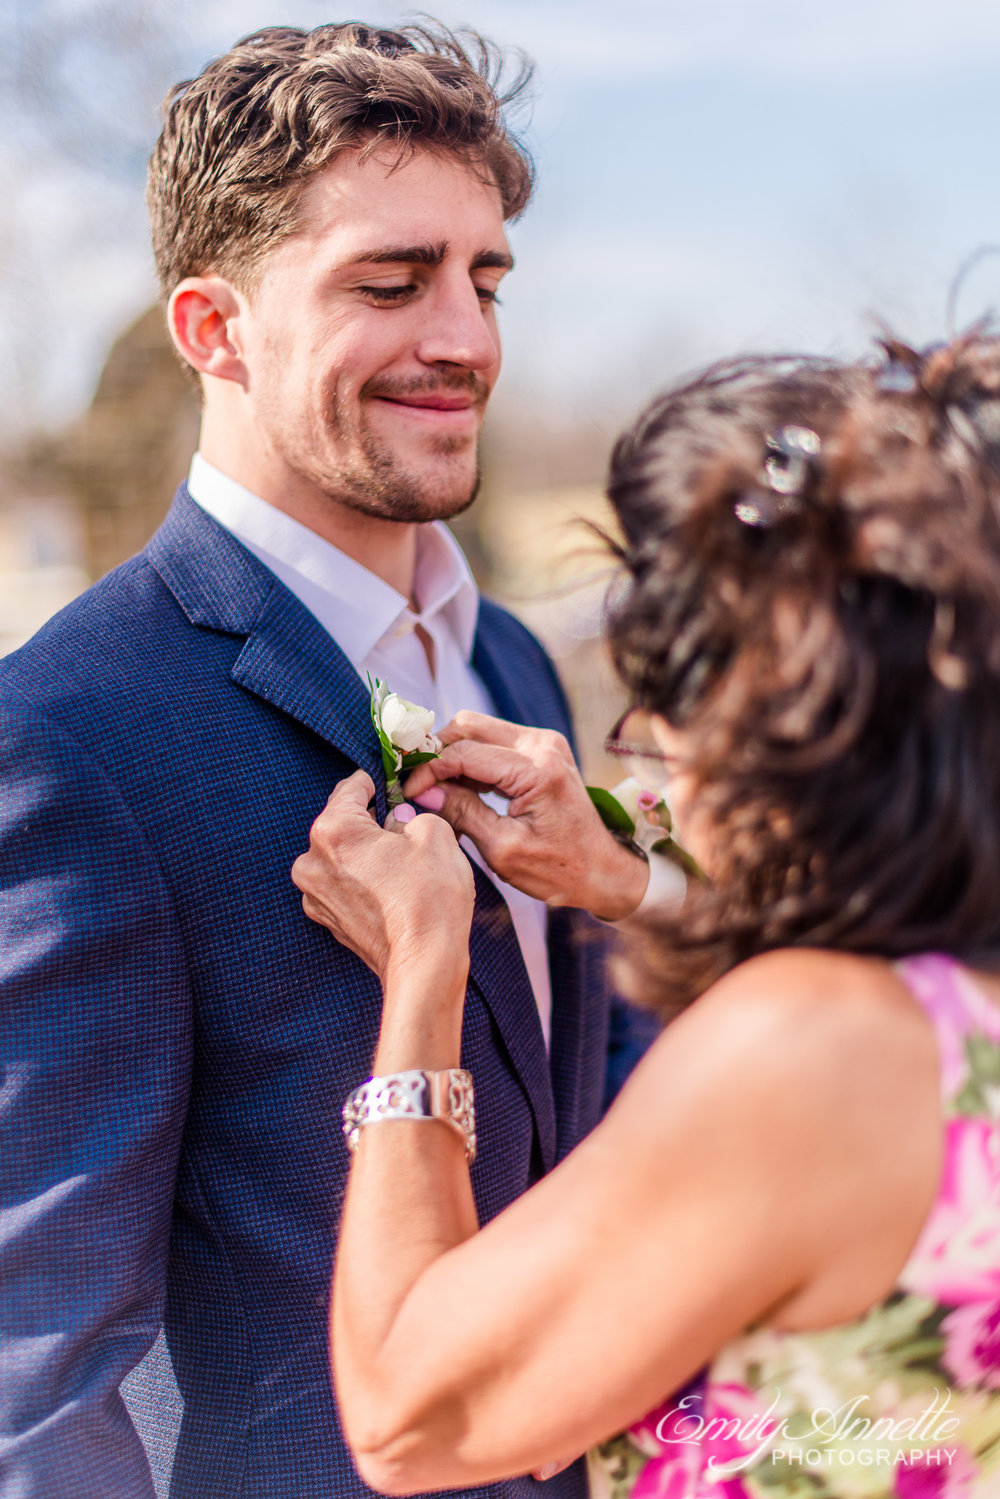 The mother of the groom pinning the boutonniere on her son the groom before his wedding at Fleetwood Farm Winery in Leesburg, Virginia